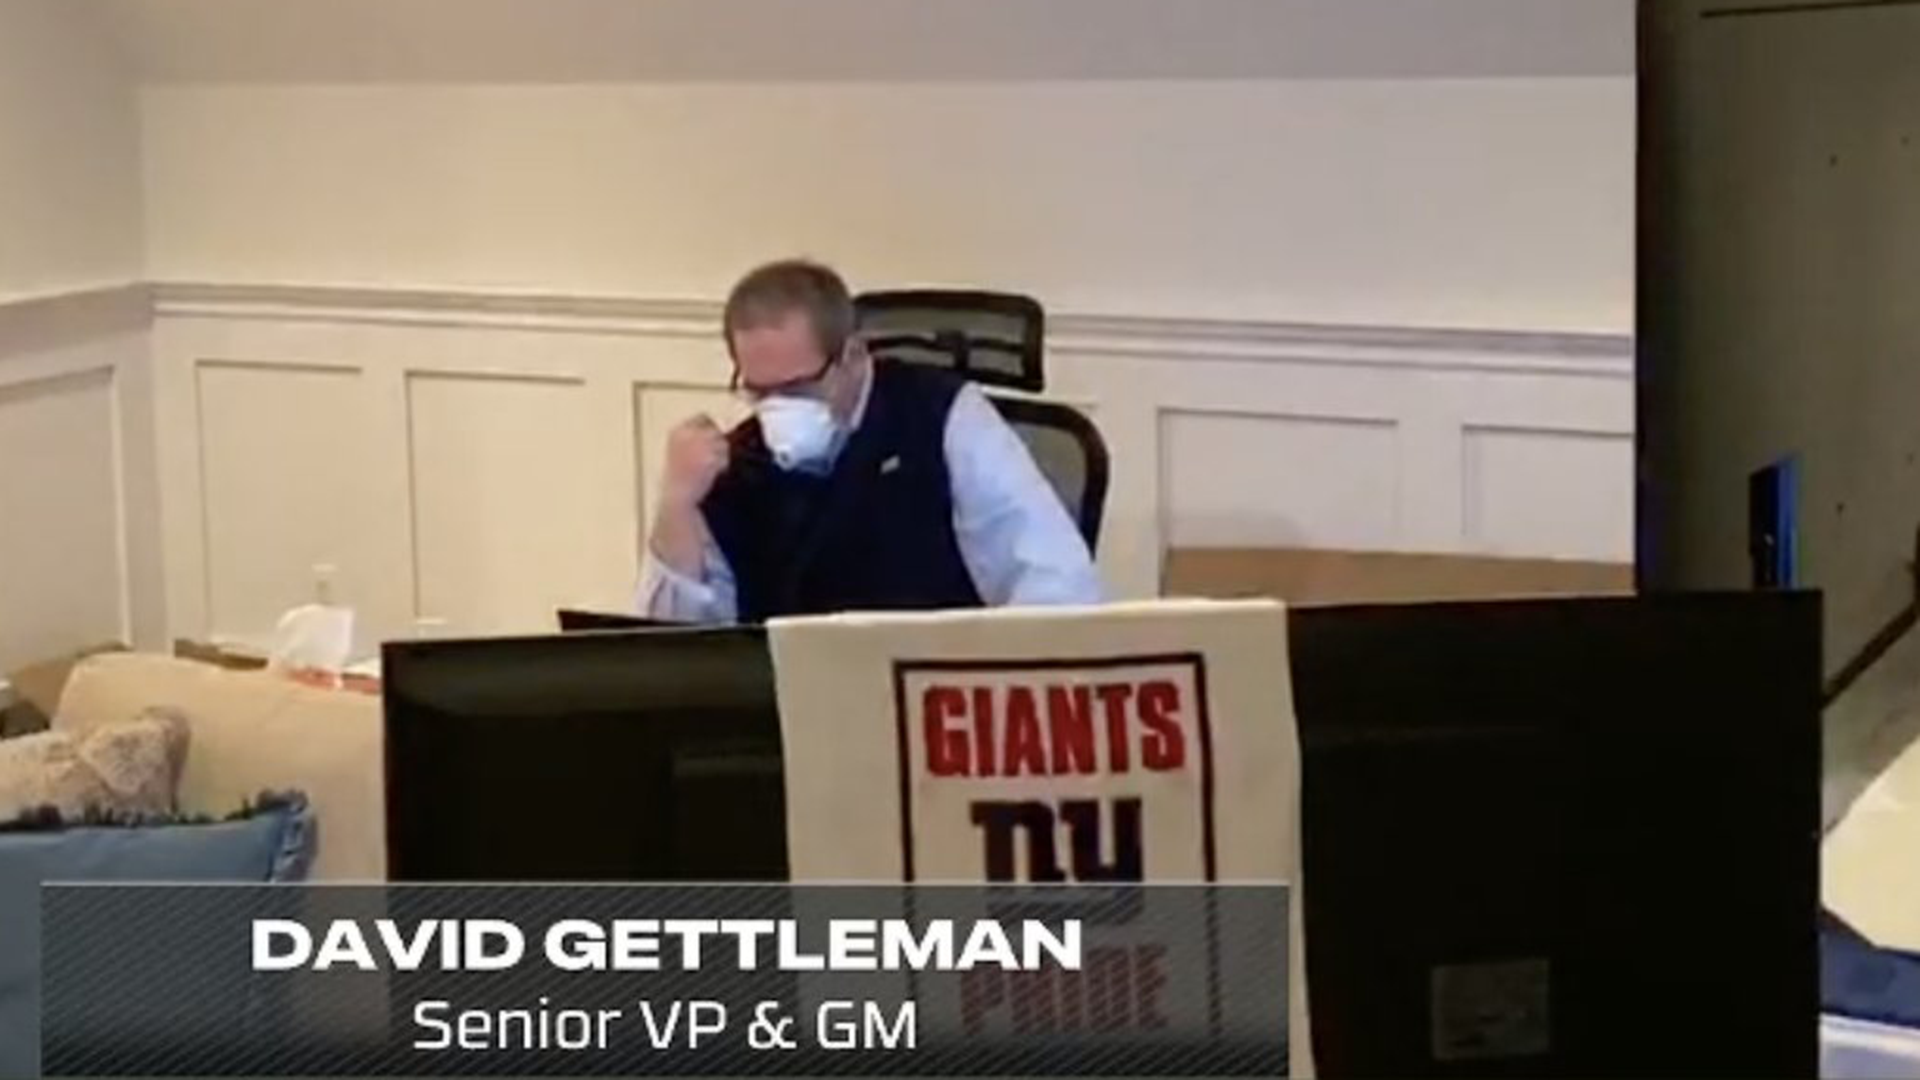 There's a good reason Dave Gettleman wore a mask in his empty NFL Draft room 1